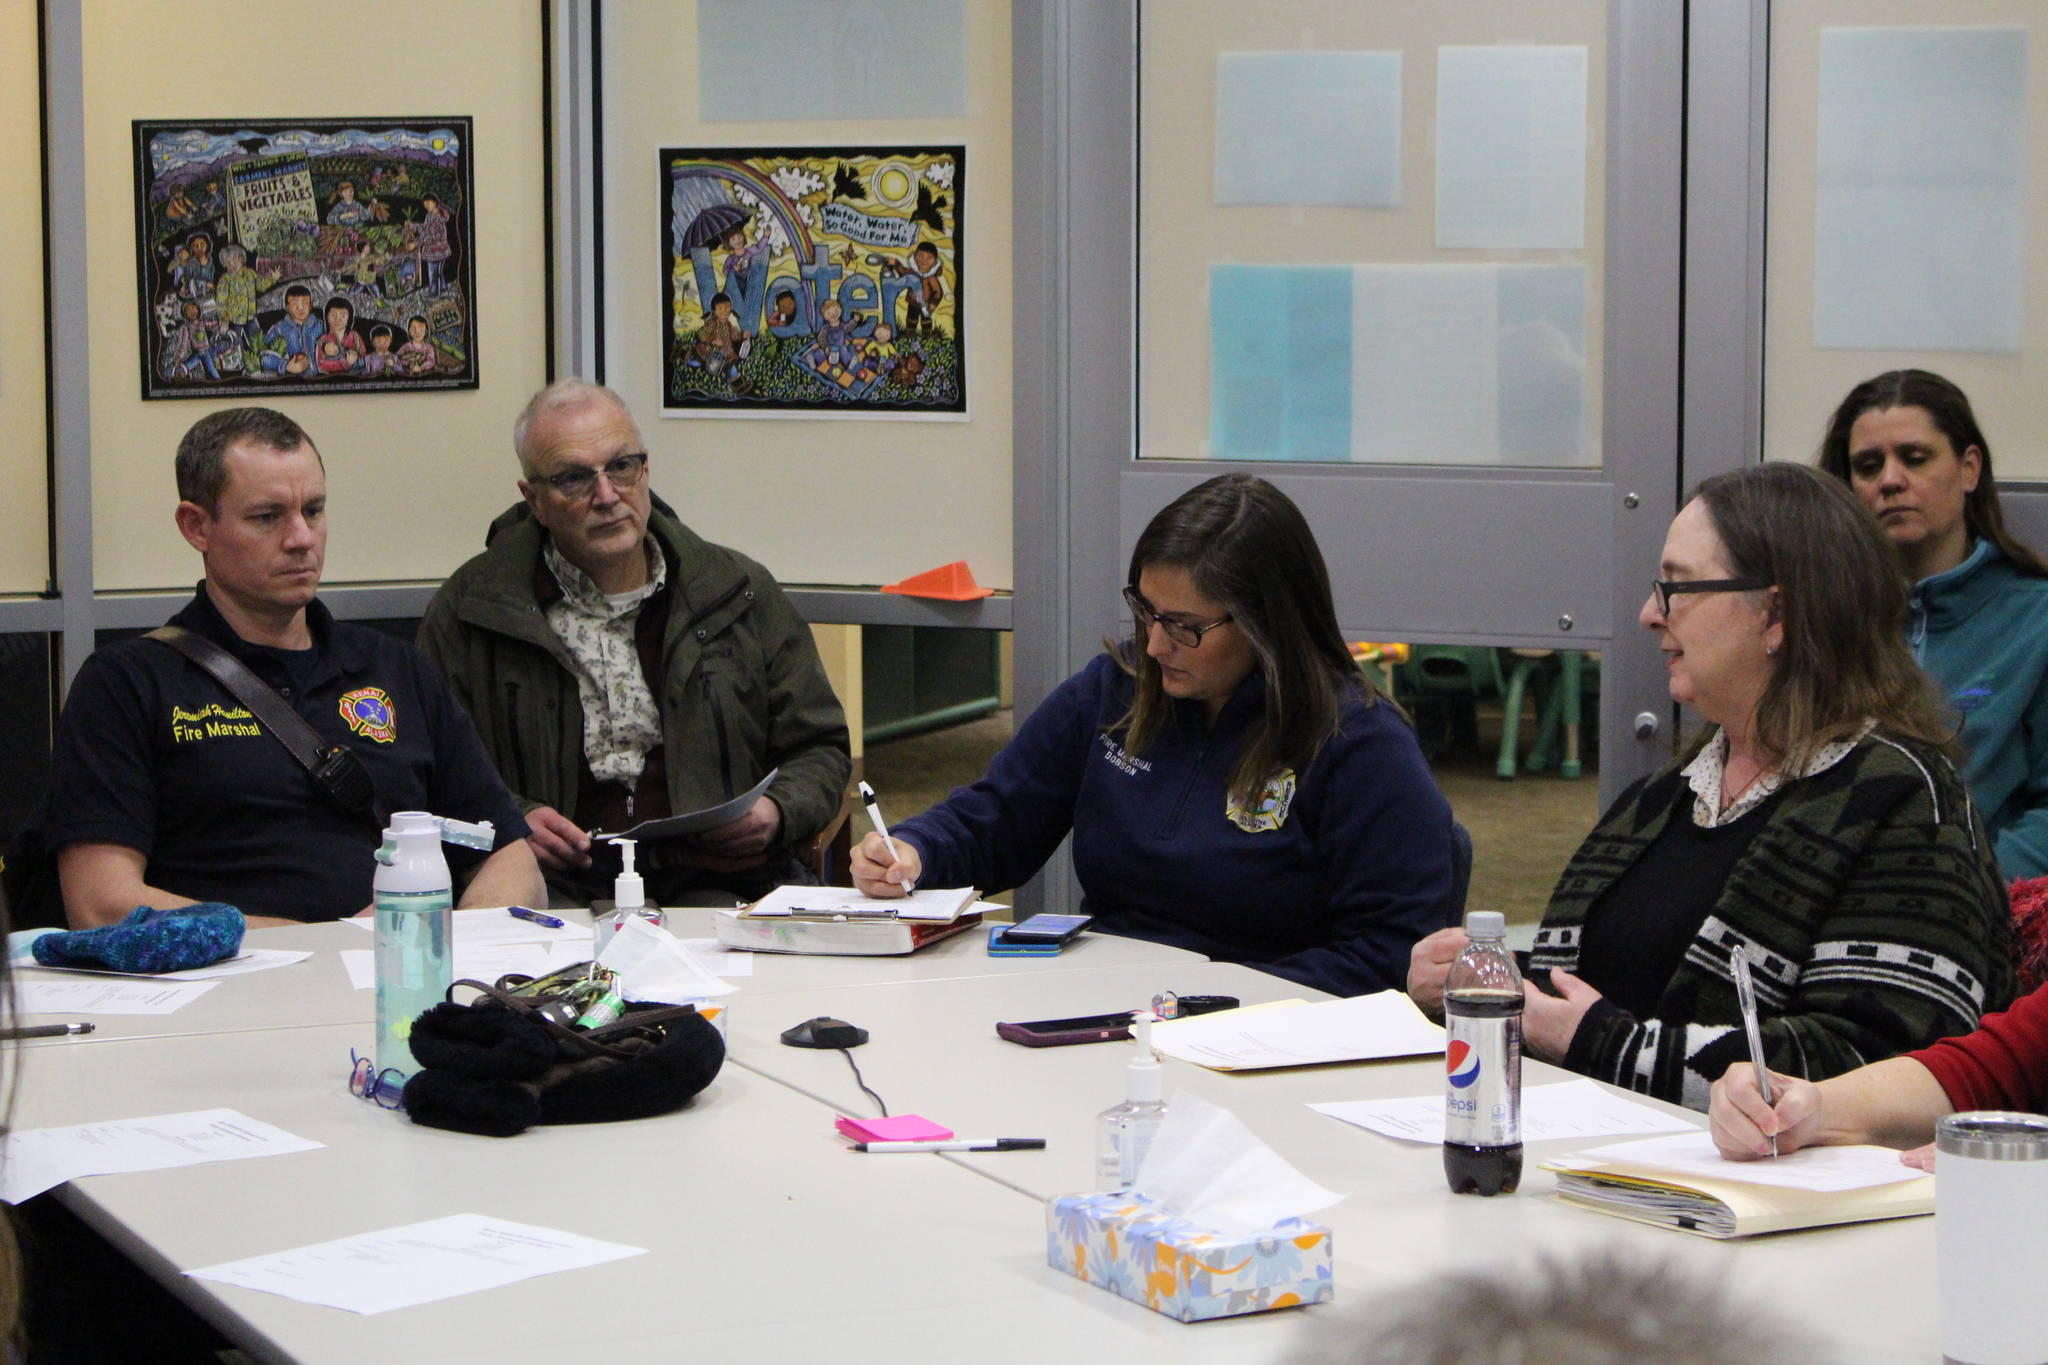 Brian Mazurek / Peninsula Clarion                                 Fire Marshals Jeremy Hamilton (left) and Brooke Dobson (center right) meet with members of the Shelter Development Workgroup at the Kenai Public Health Center in Kenai on Jan. 8.